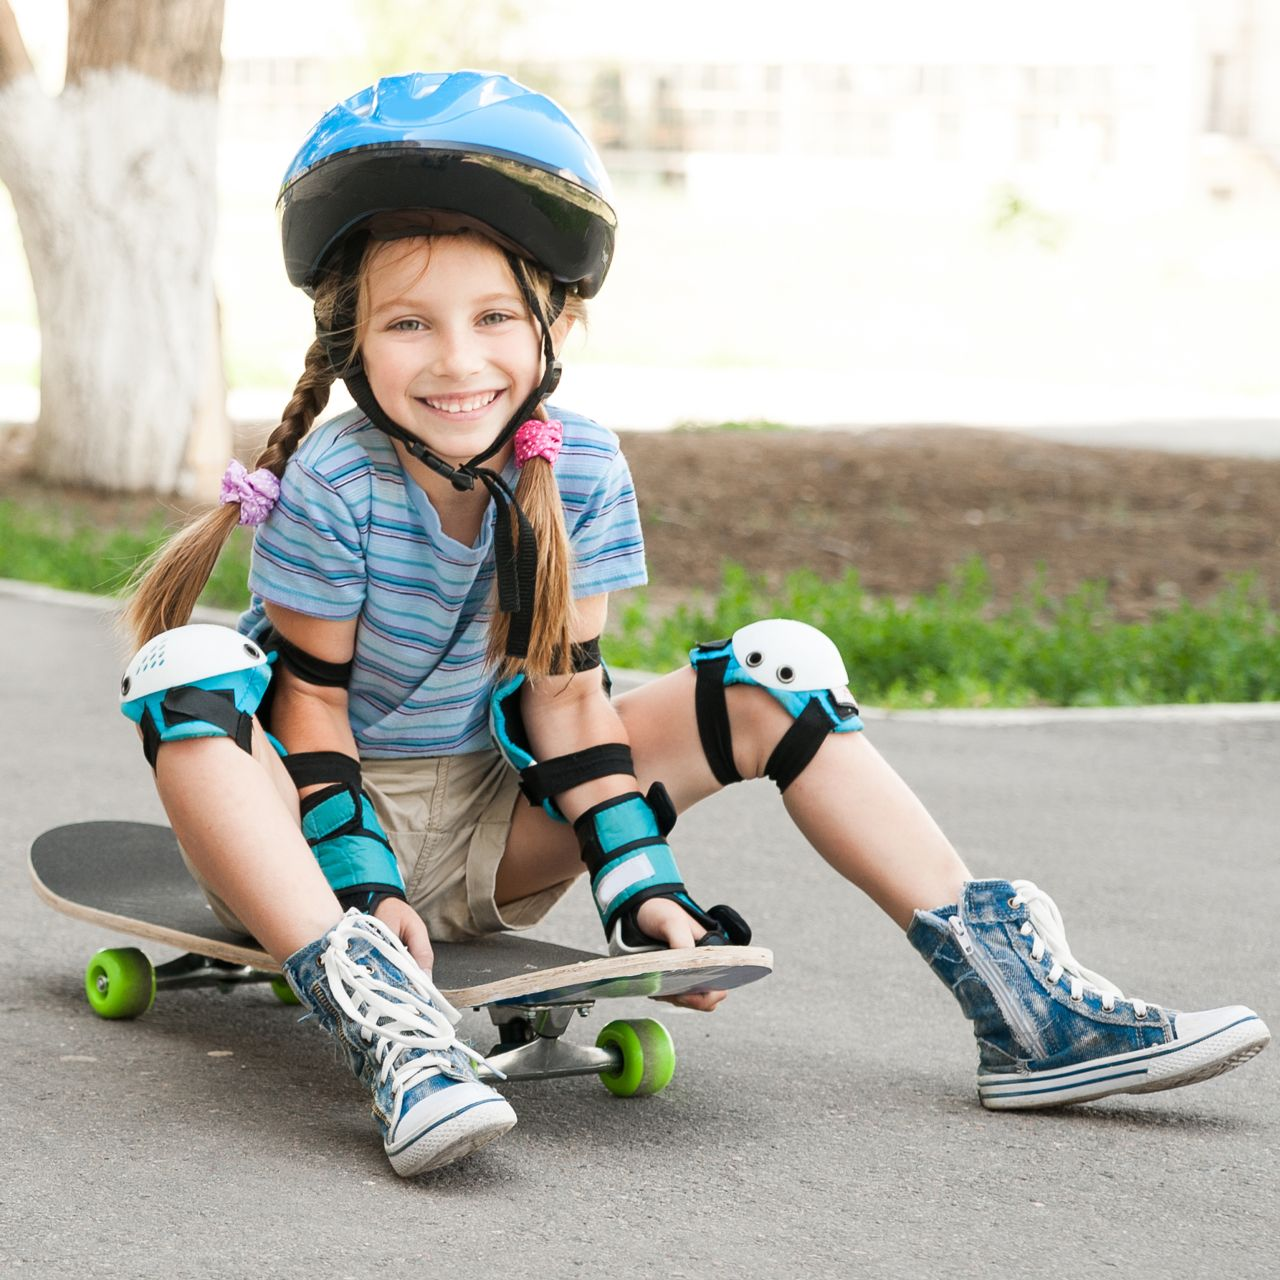 Kid Wearing a Helmet on a Skateboard